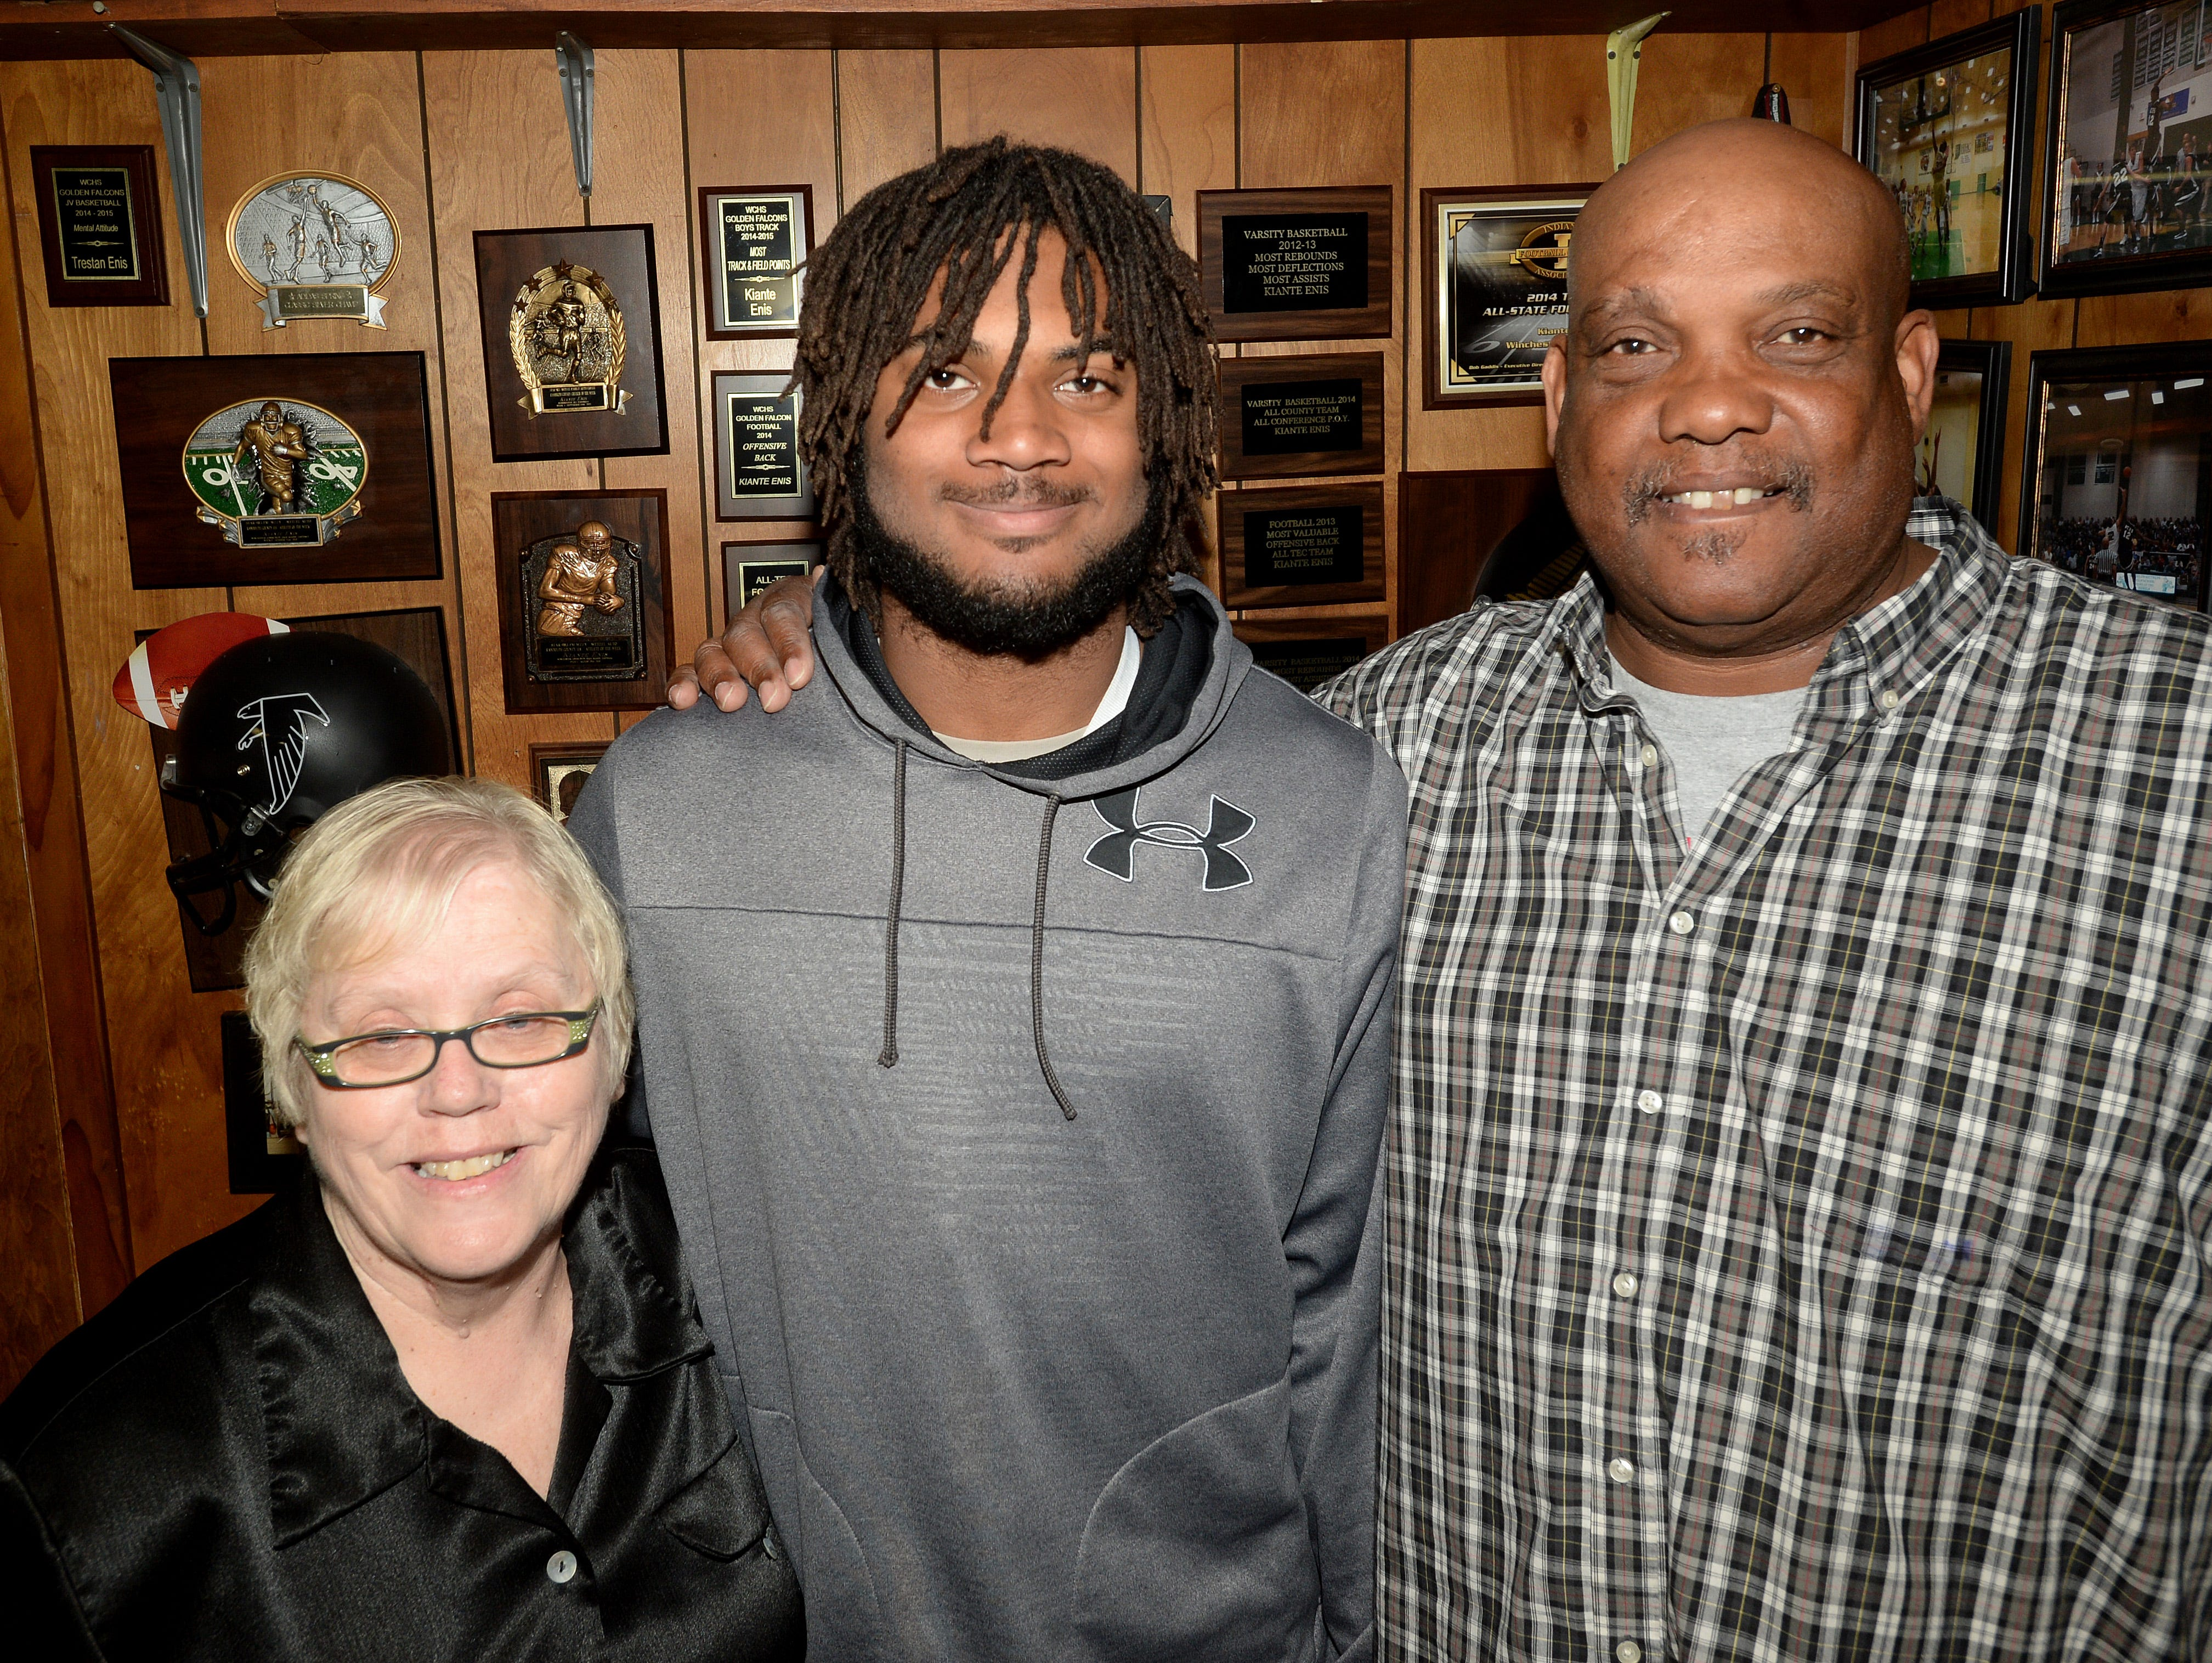 Kiante Enis with grandmother Judy Enis, left, and grandfather Dwight, Saturday, April 30, 2016, at their home in Saratoga, Ind.